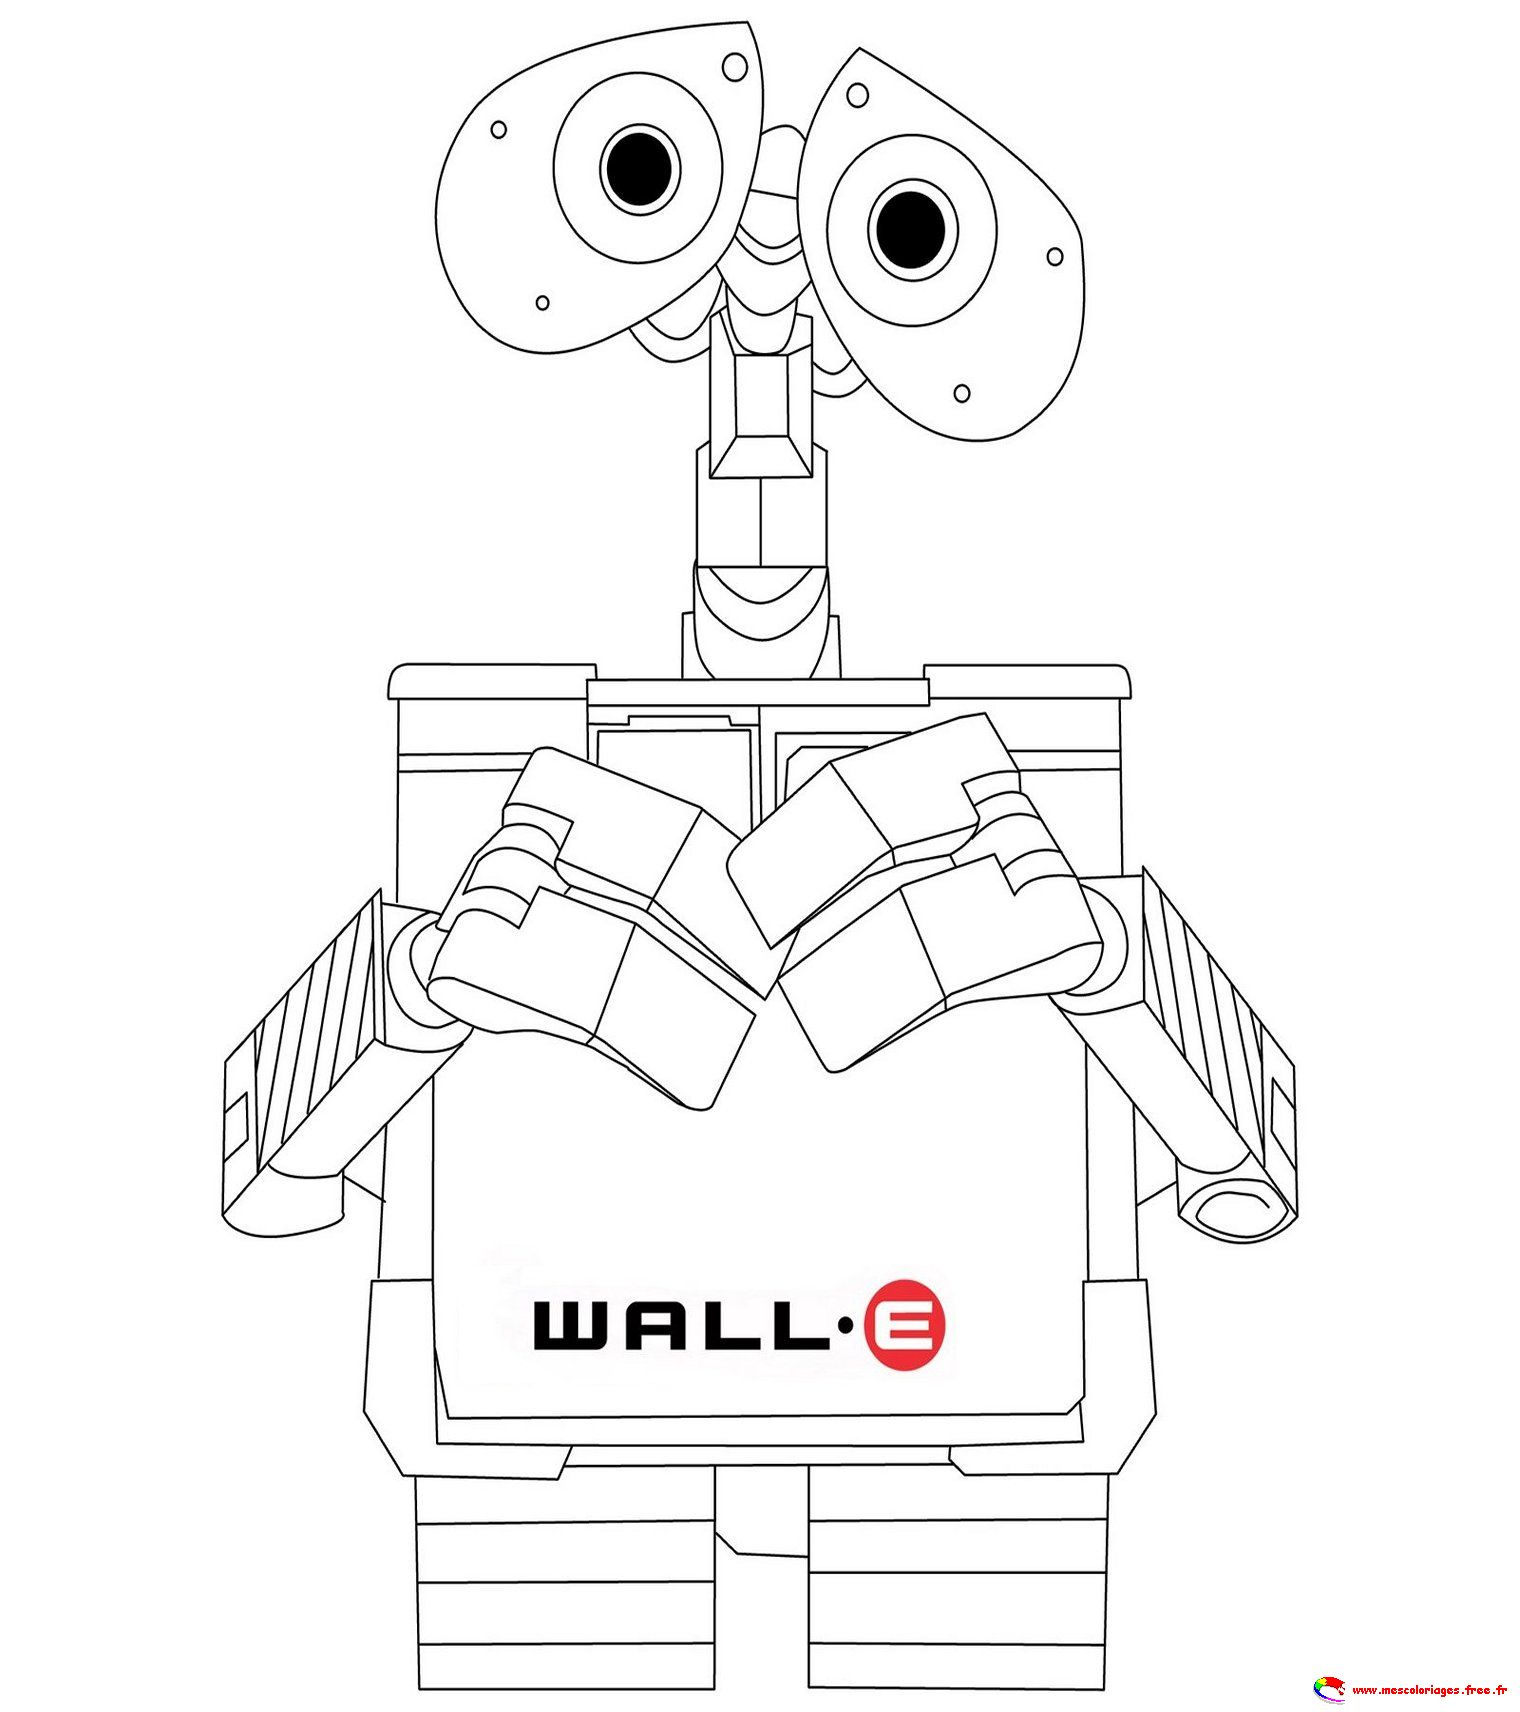 Simple Wall E Coloring Page To Print And Color For Free